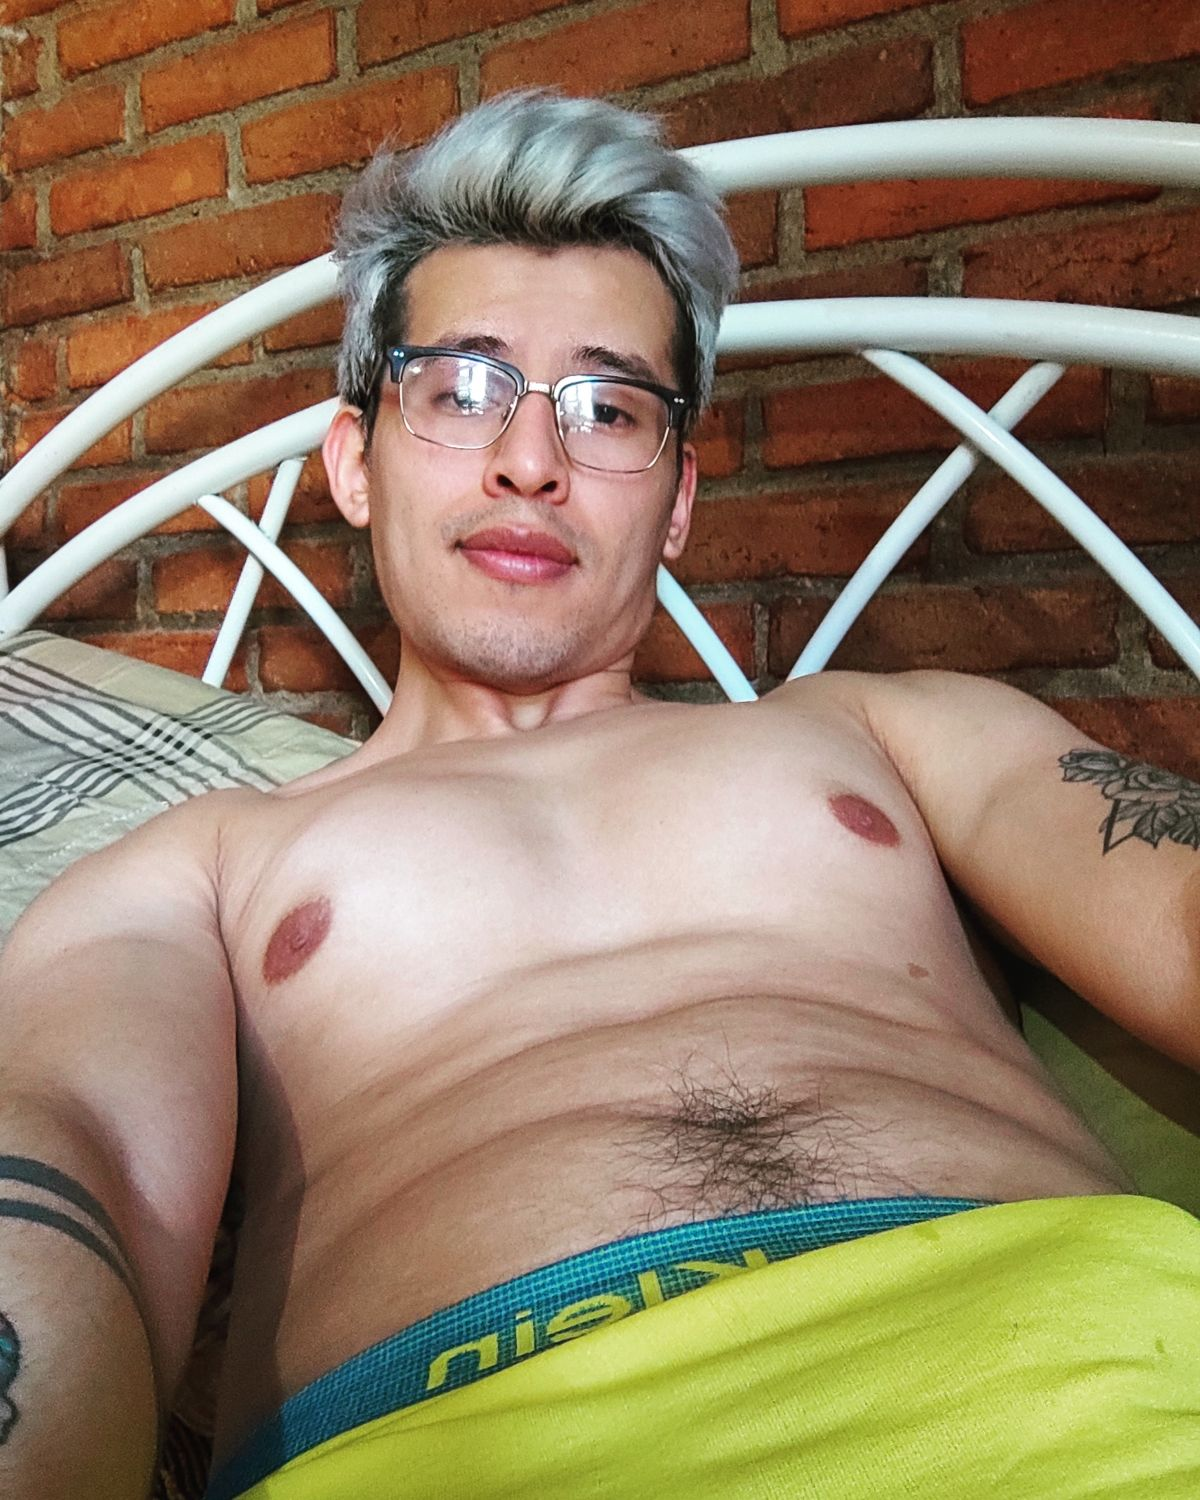 Oscar G.R photos and videos onlyfans leaked